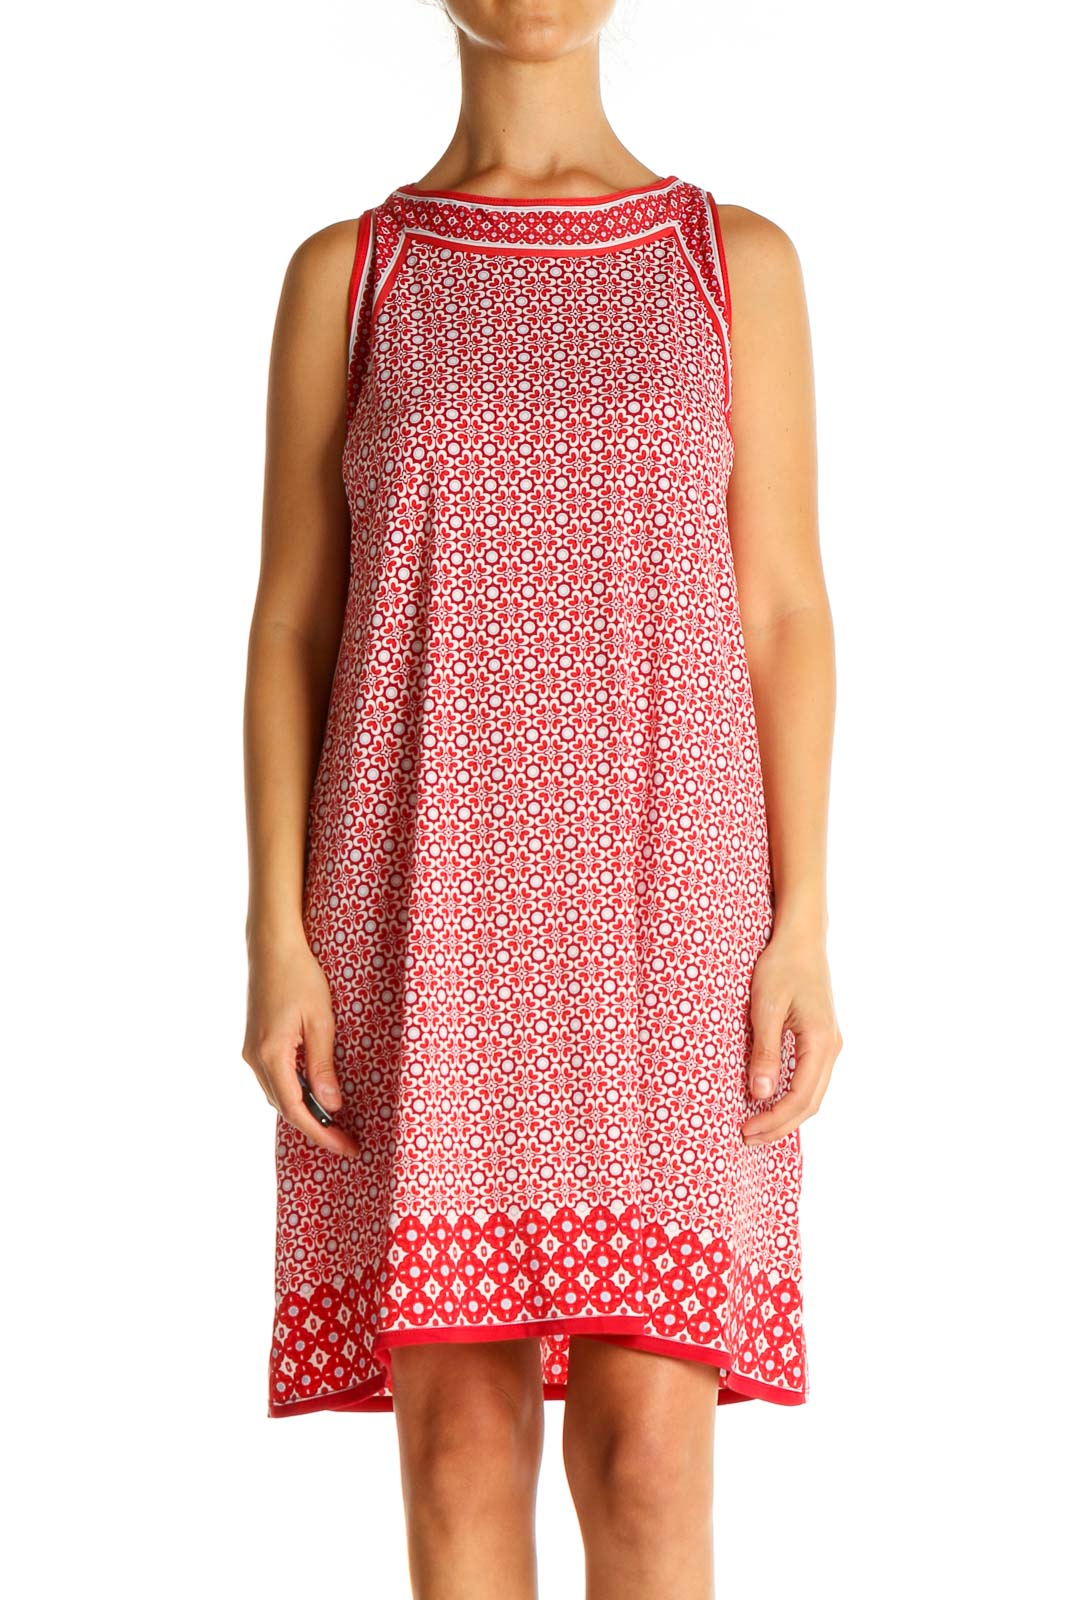 Red Geometric Print Casual A-Line Dress Front